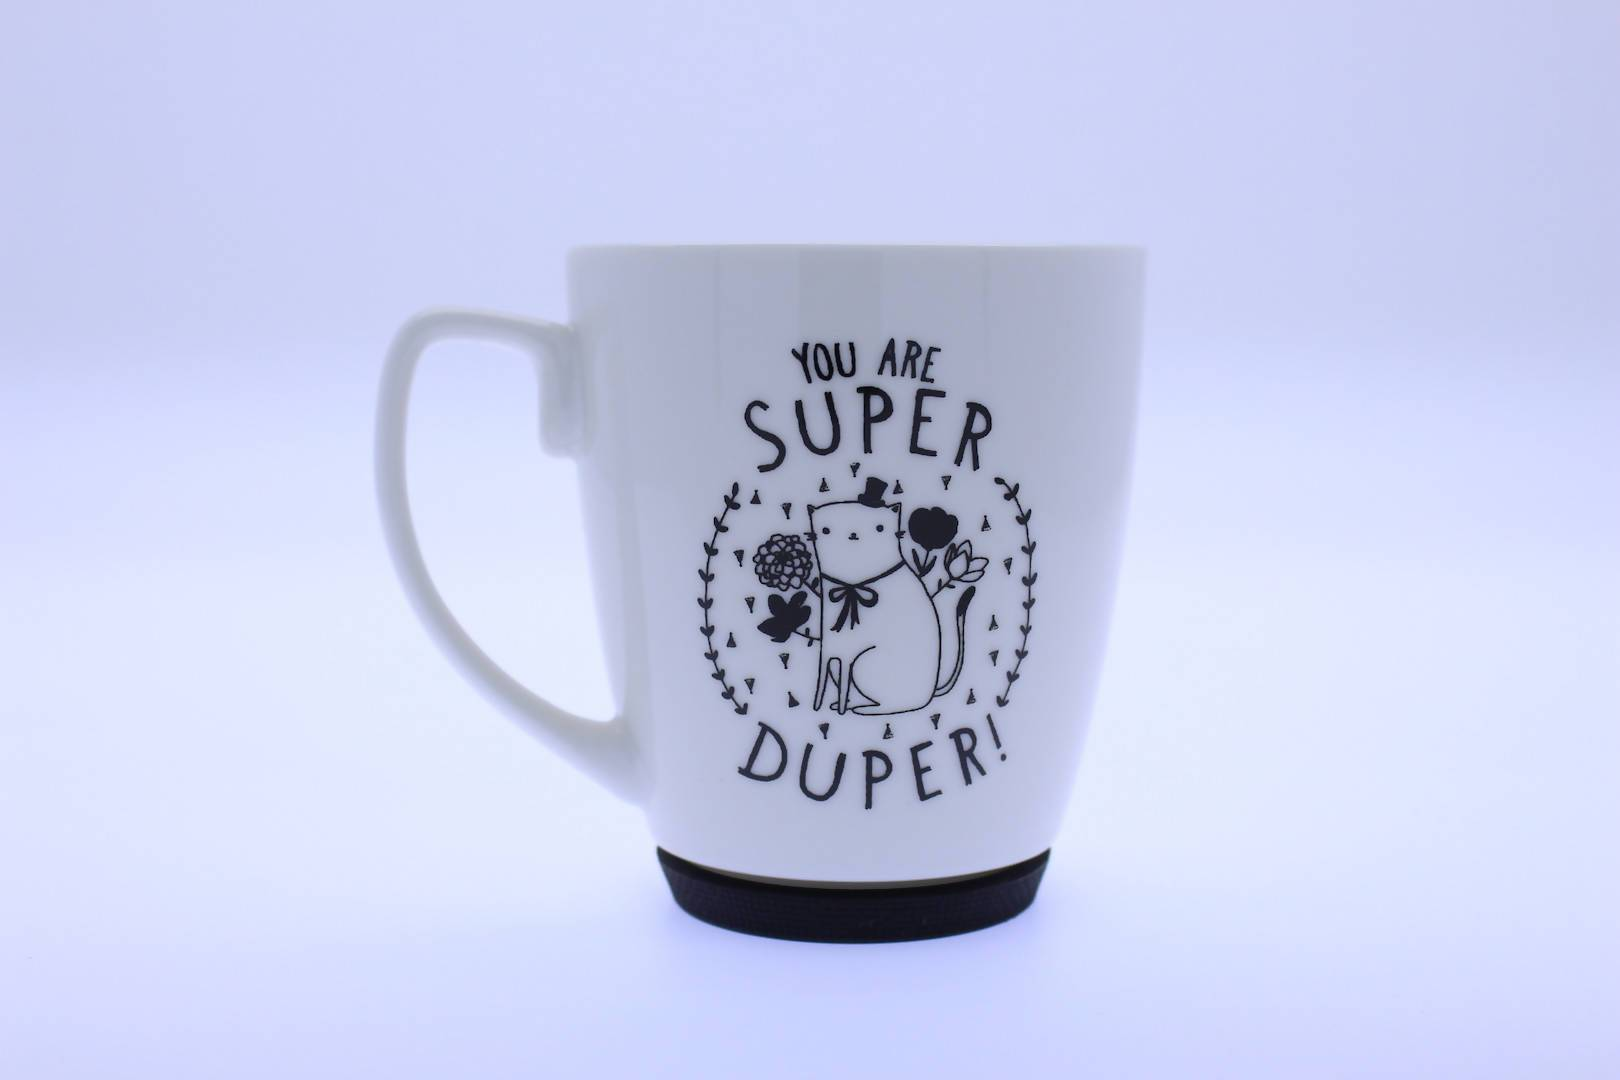 ROYAL SPADE AWESOME MUG - SUPER DUPER - Mugs - The Planet Collection - Naiise